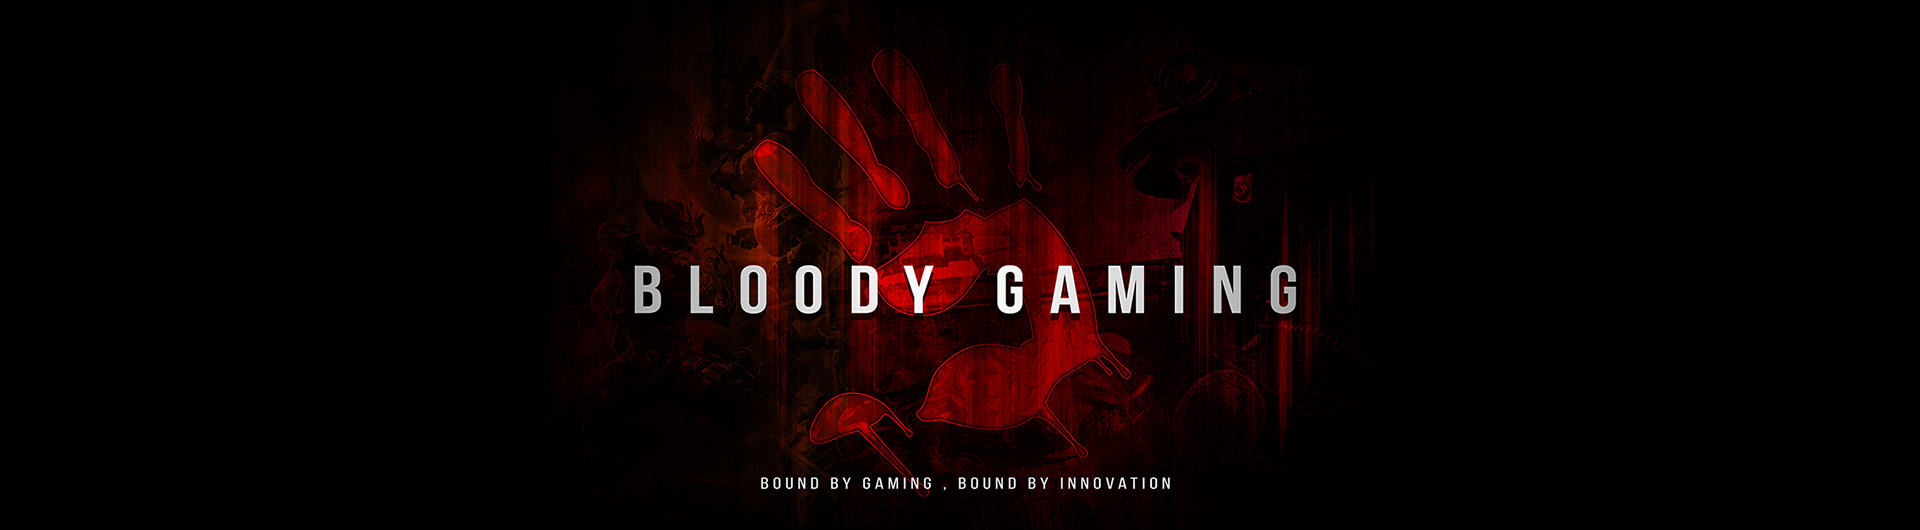 bloody gaming a4 tech pakistan